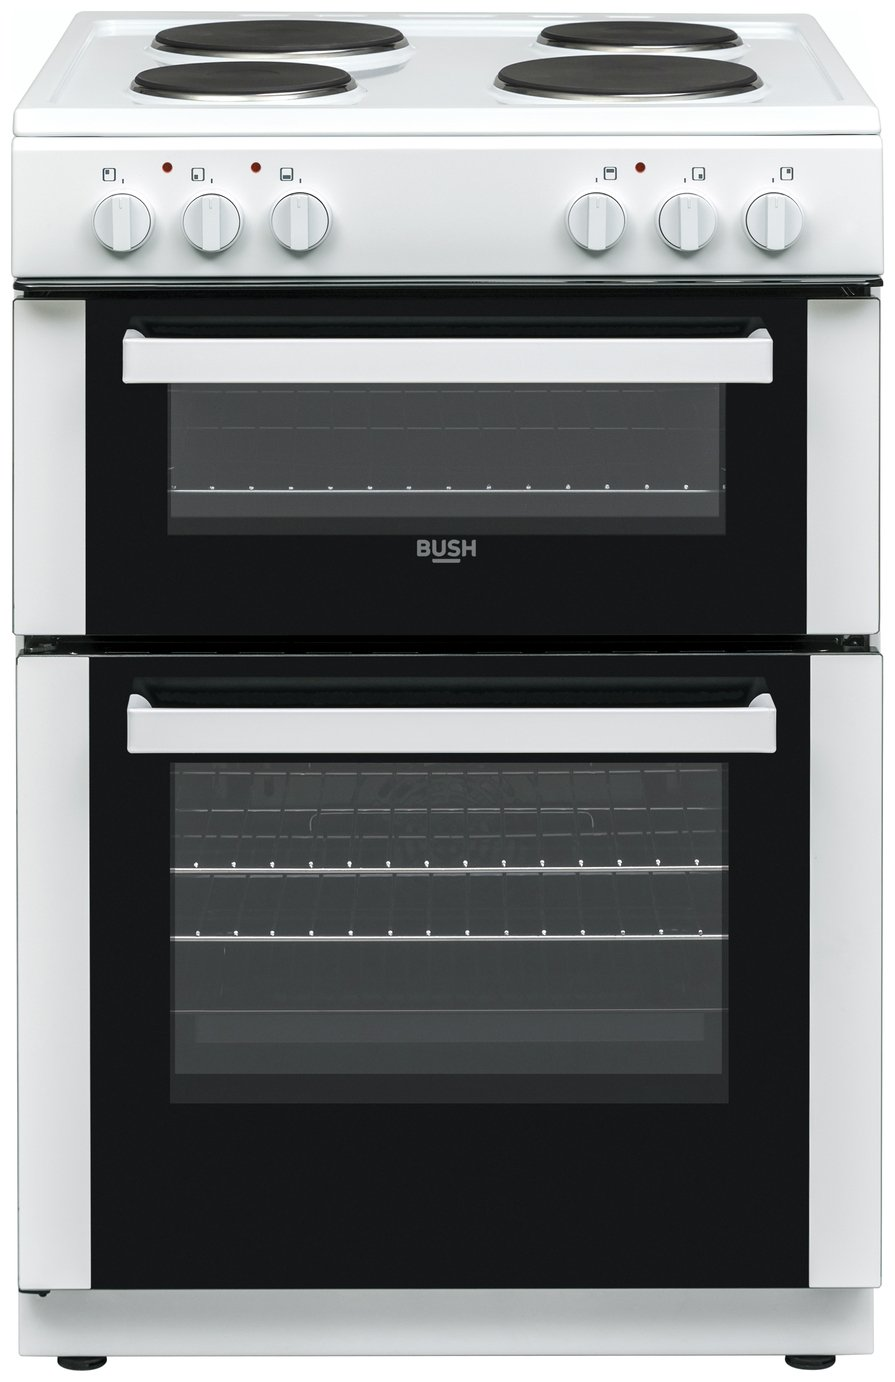 Bush DHBET60W 60cm Twin Cavity Electric Cooker - White